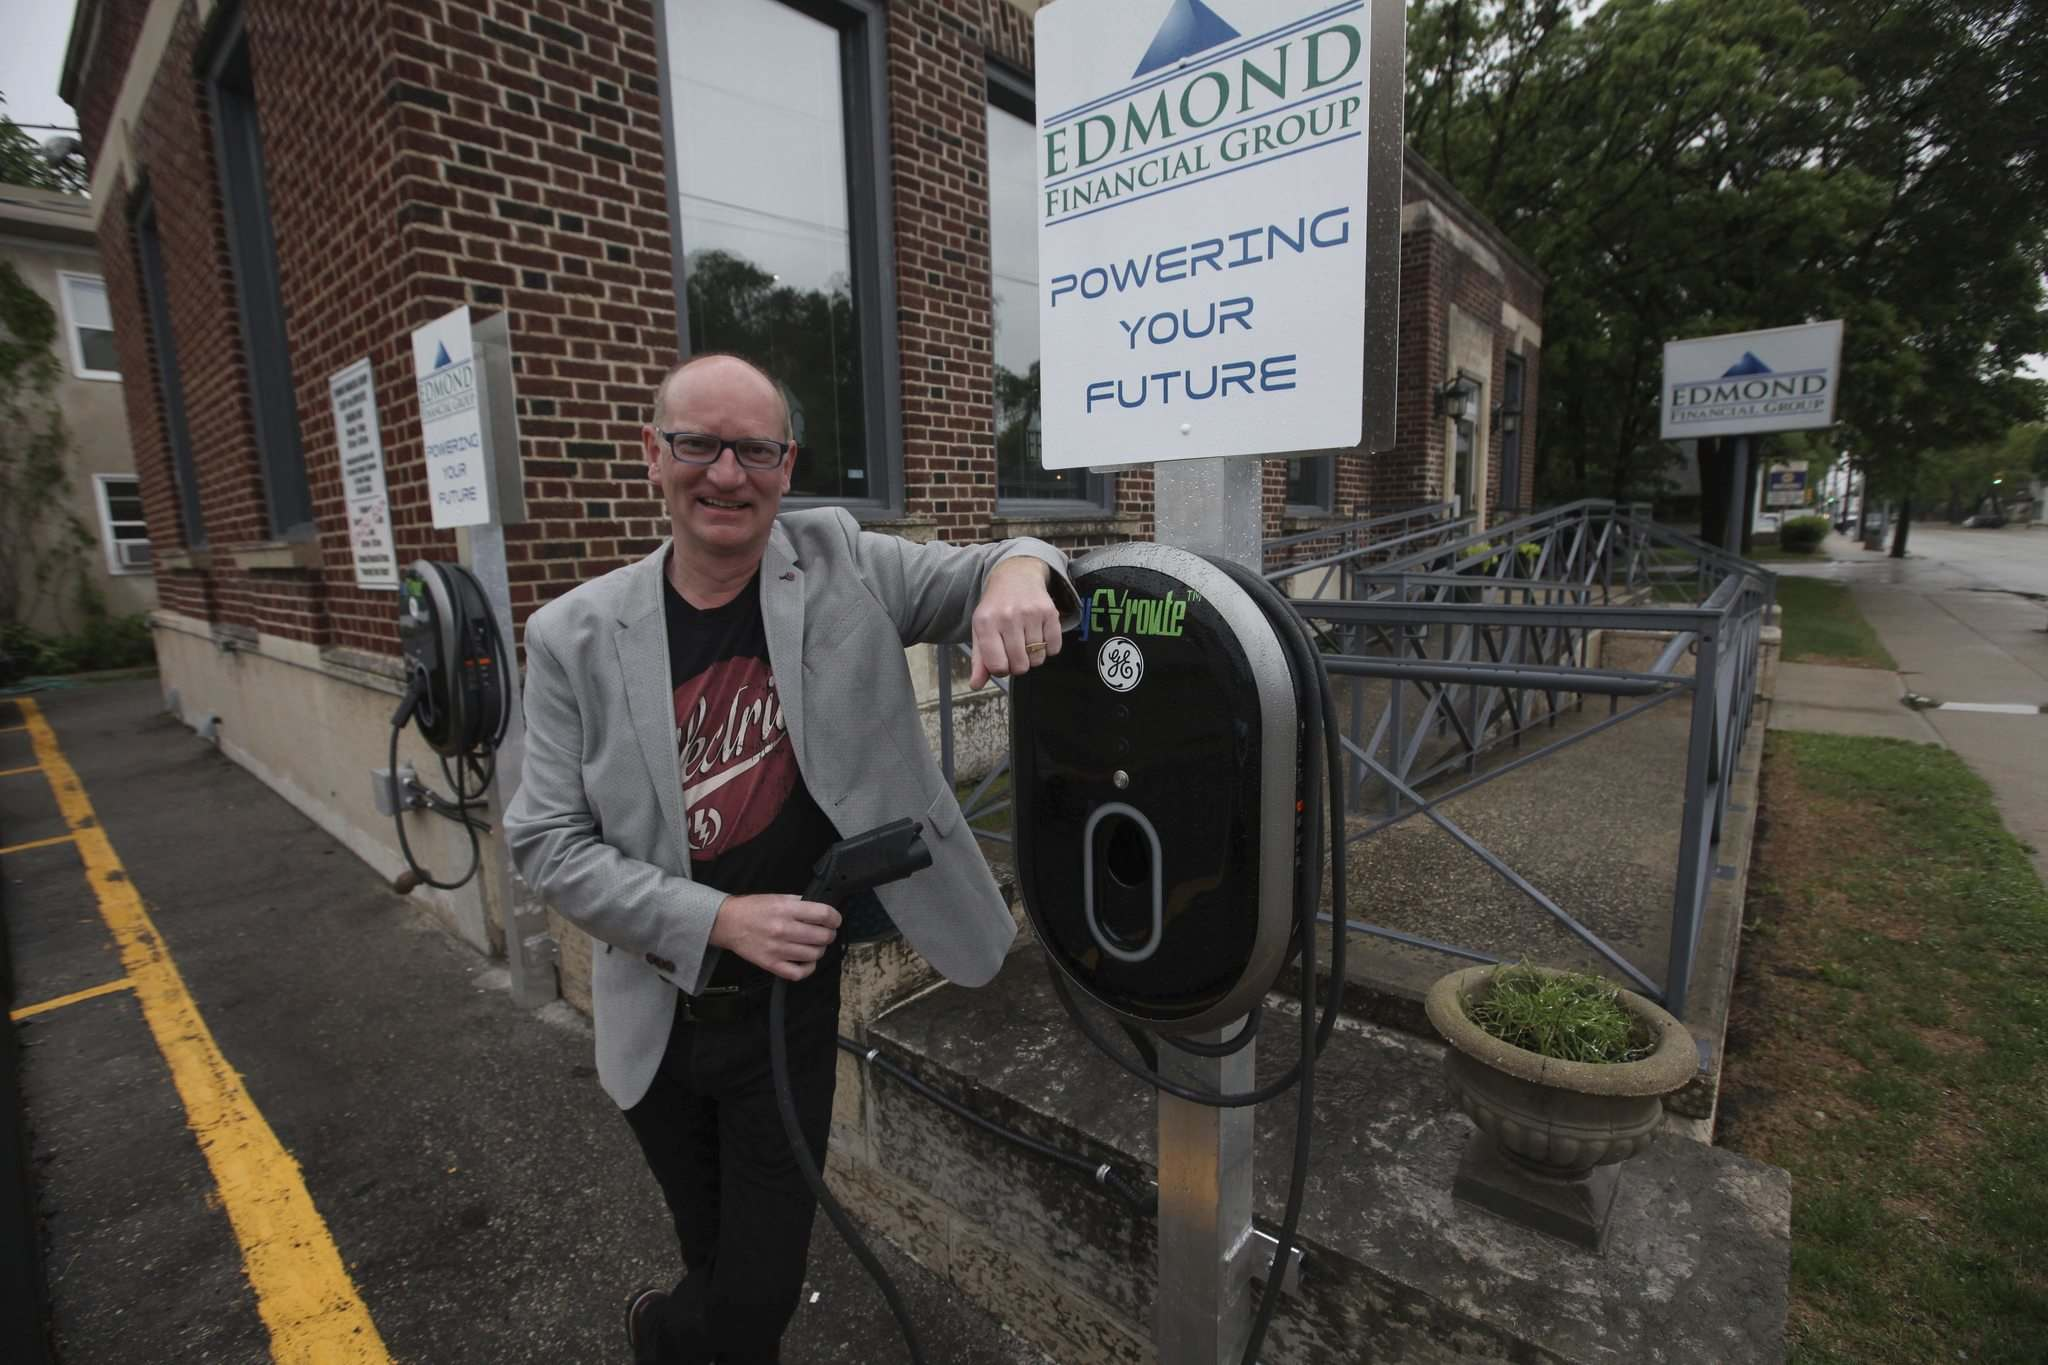 RUTH BONNEVILLE / WINNIPEG FREE PRESS</p><p>Paul Edmond, CEO of Edmond Financial, has installed two electric-vehicle charging stations outside its Academy Road offices, at a cost of about $25,000. The spots are open to the public from 6 p.m. to 2 a.m. weekdays, and all weekend long.</p>